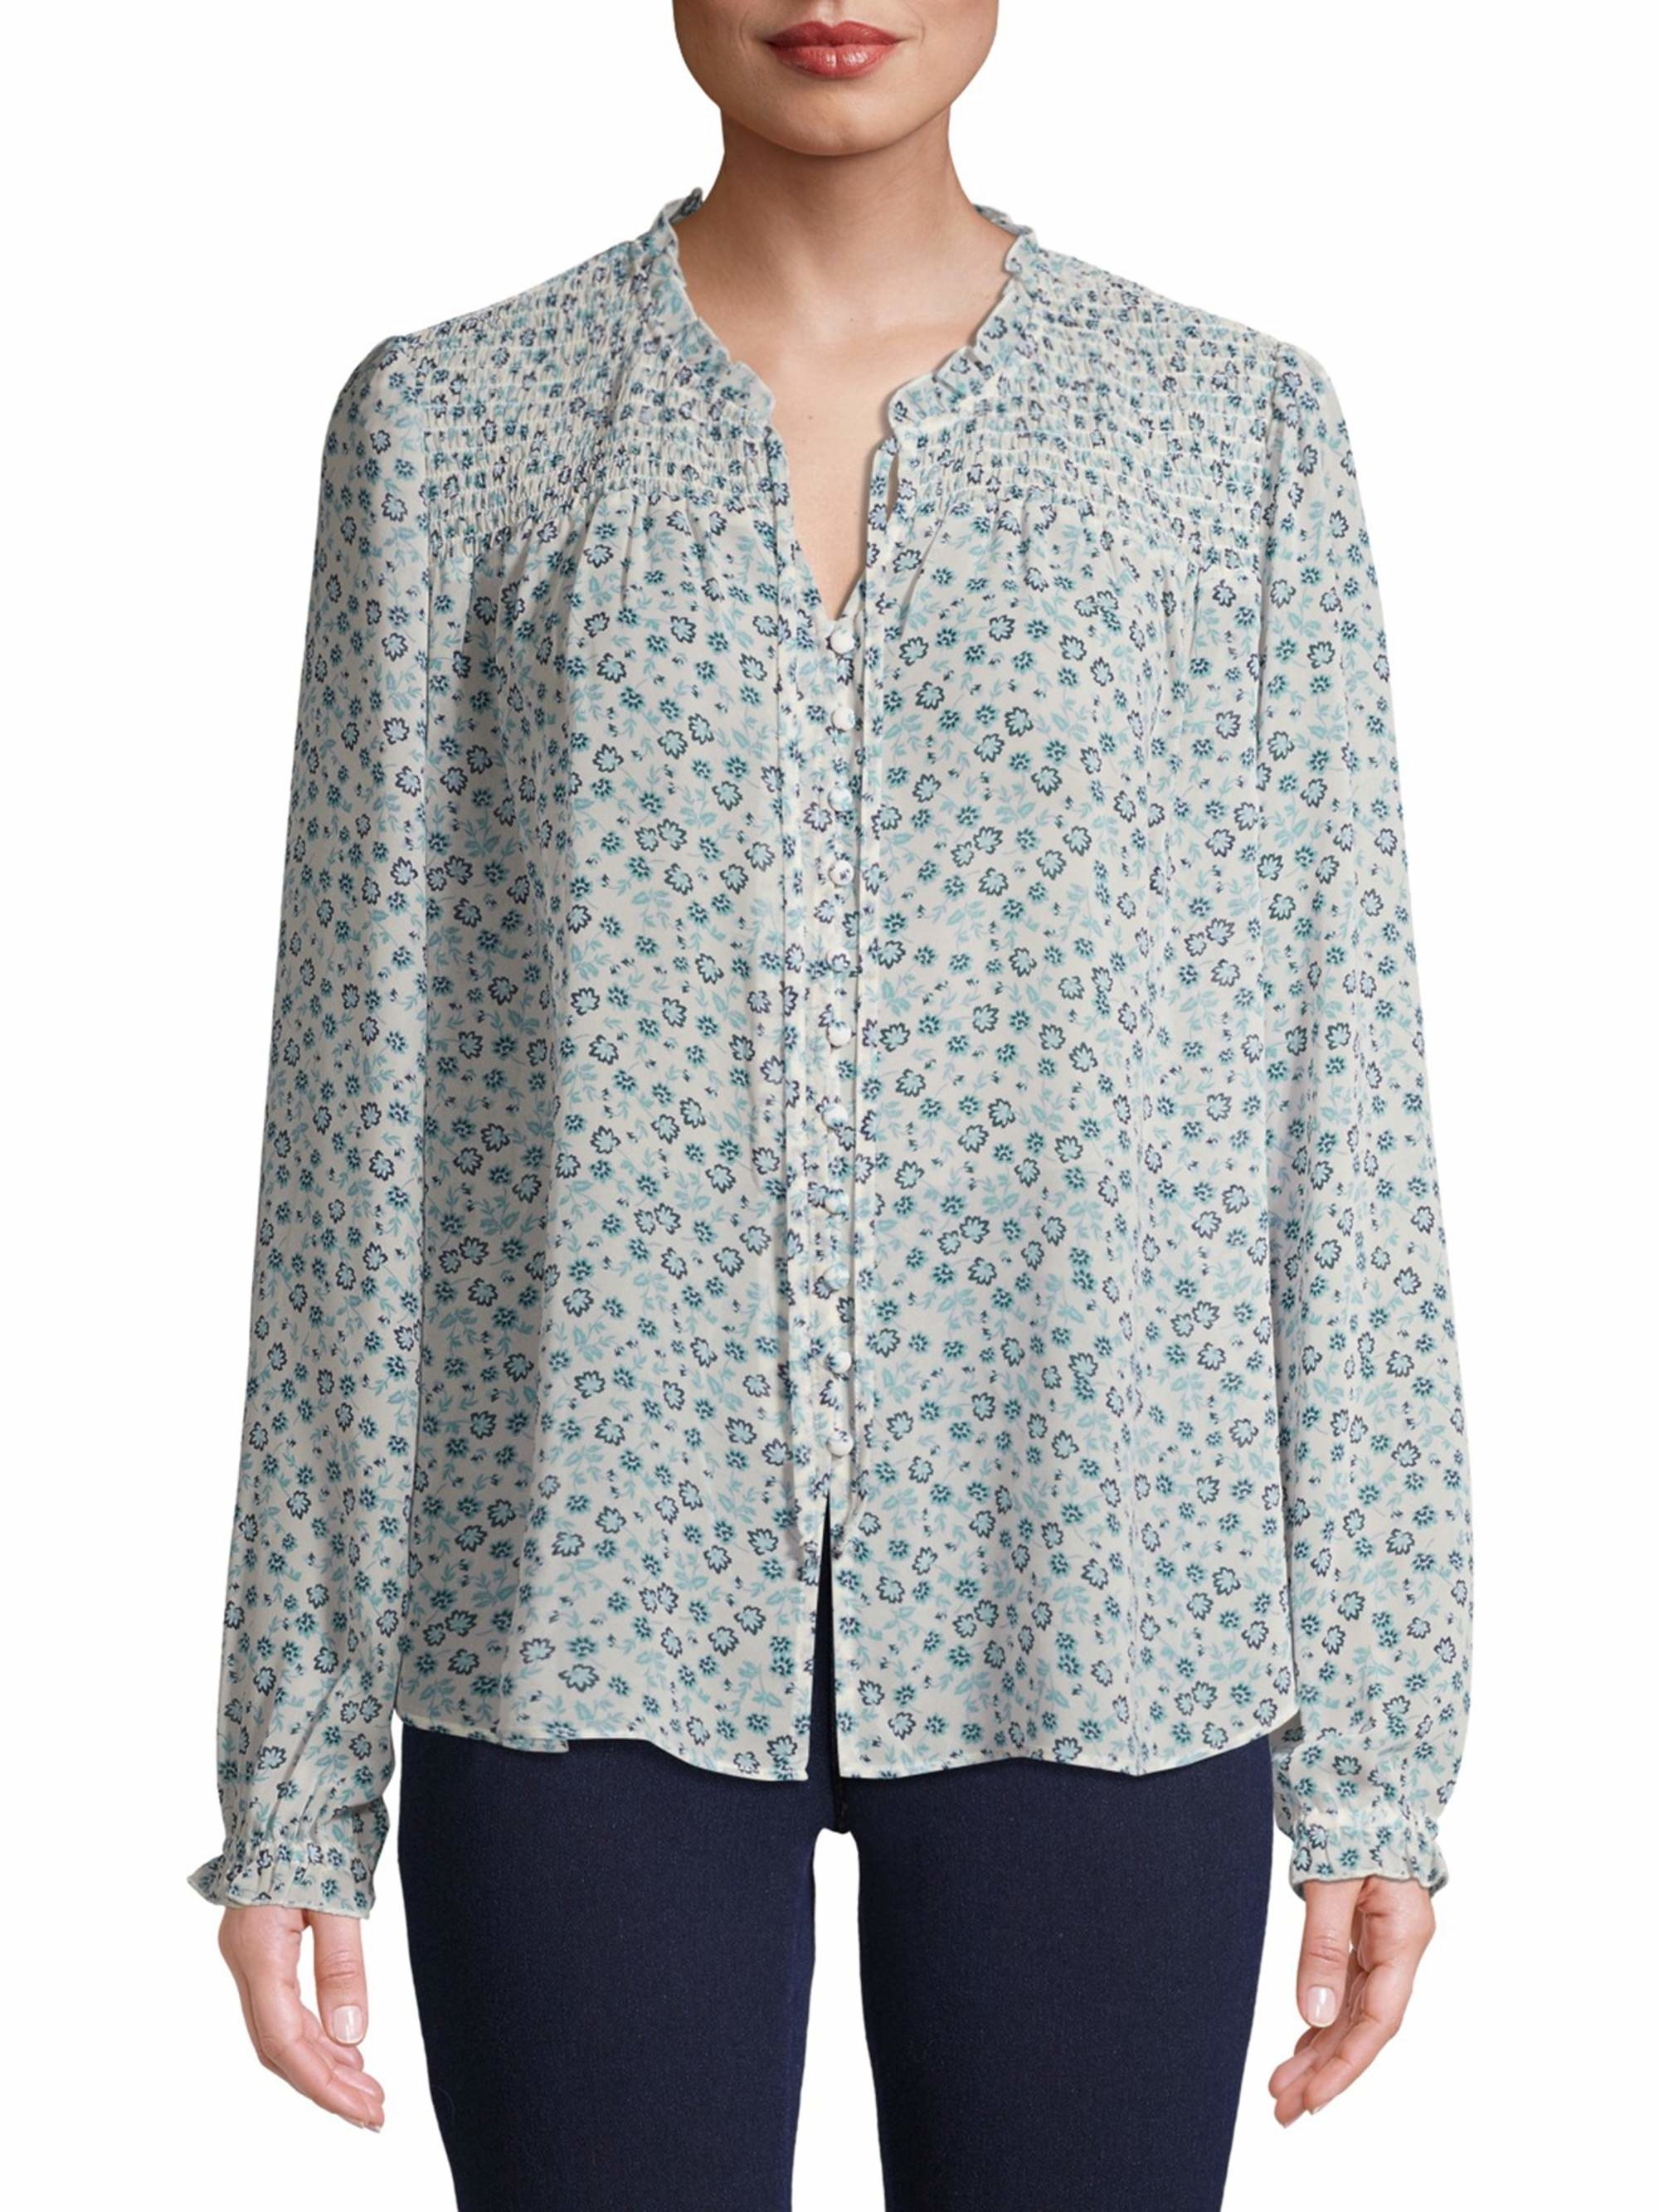 the shirt in white with blue small florals all over it